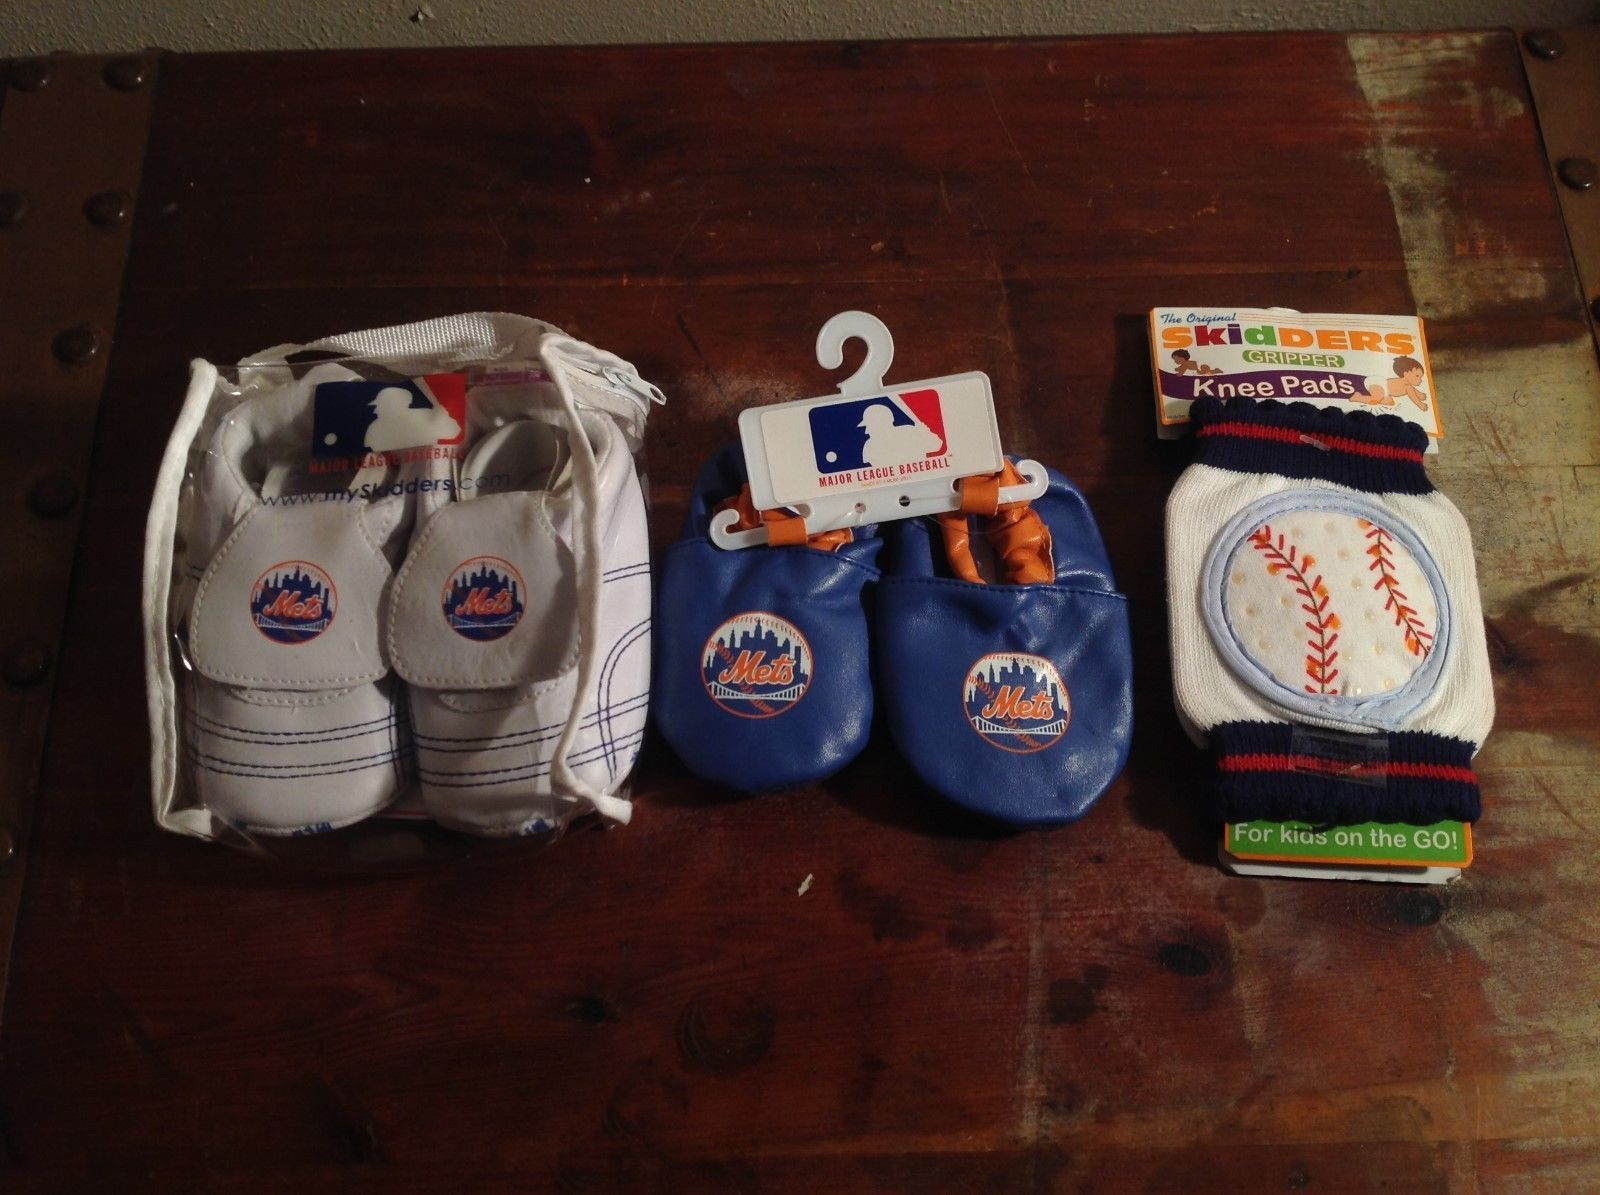 NEW Officially Licensed NY Mets Baby Shoes White Blue and Skidders Knee Pads